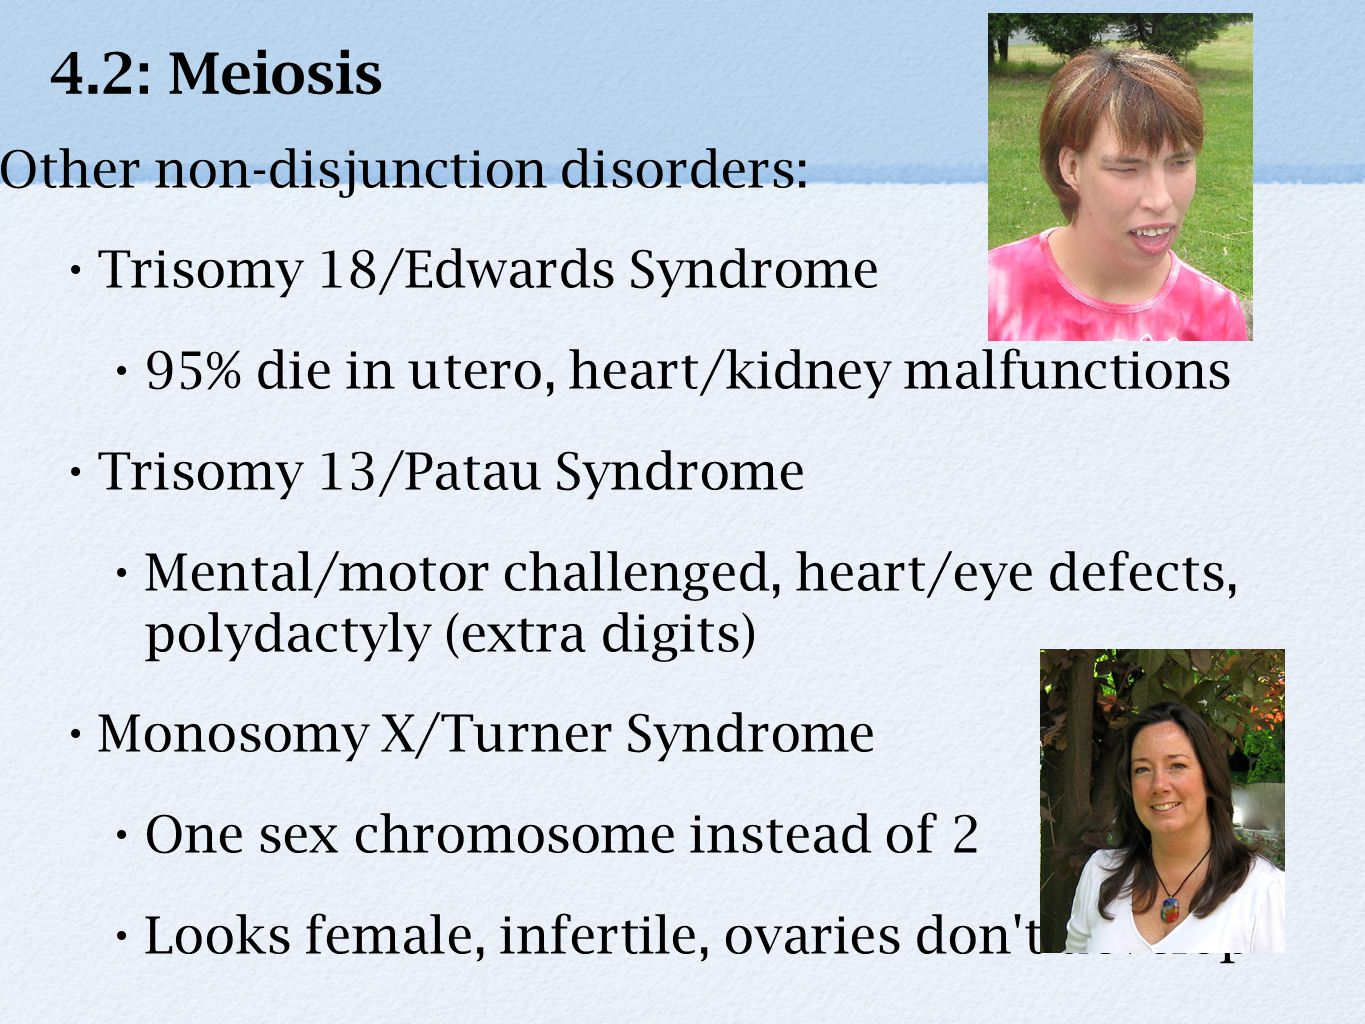 4.2: Meiosis Other non-disjunction disorders: